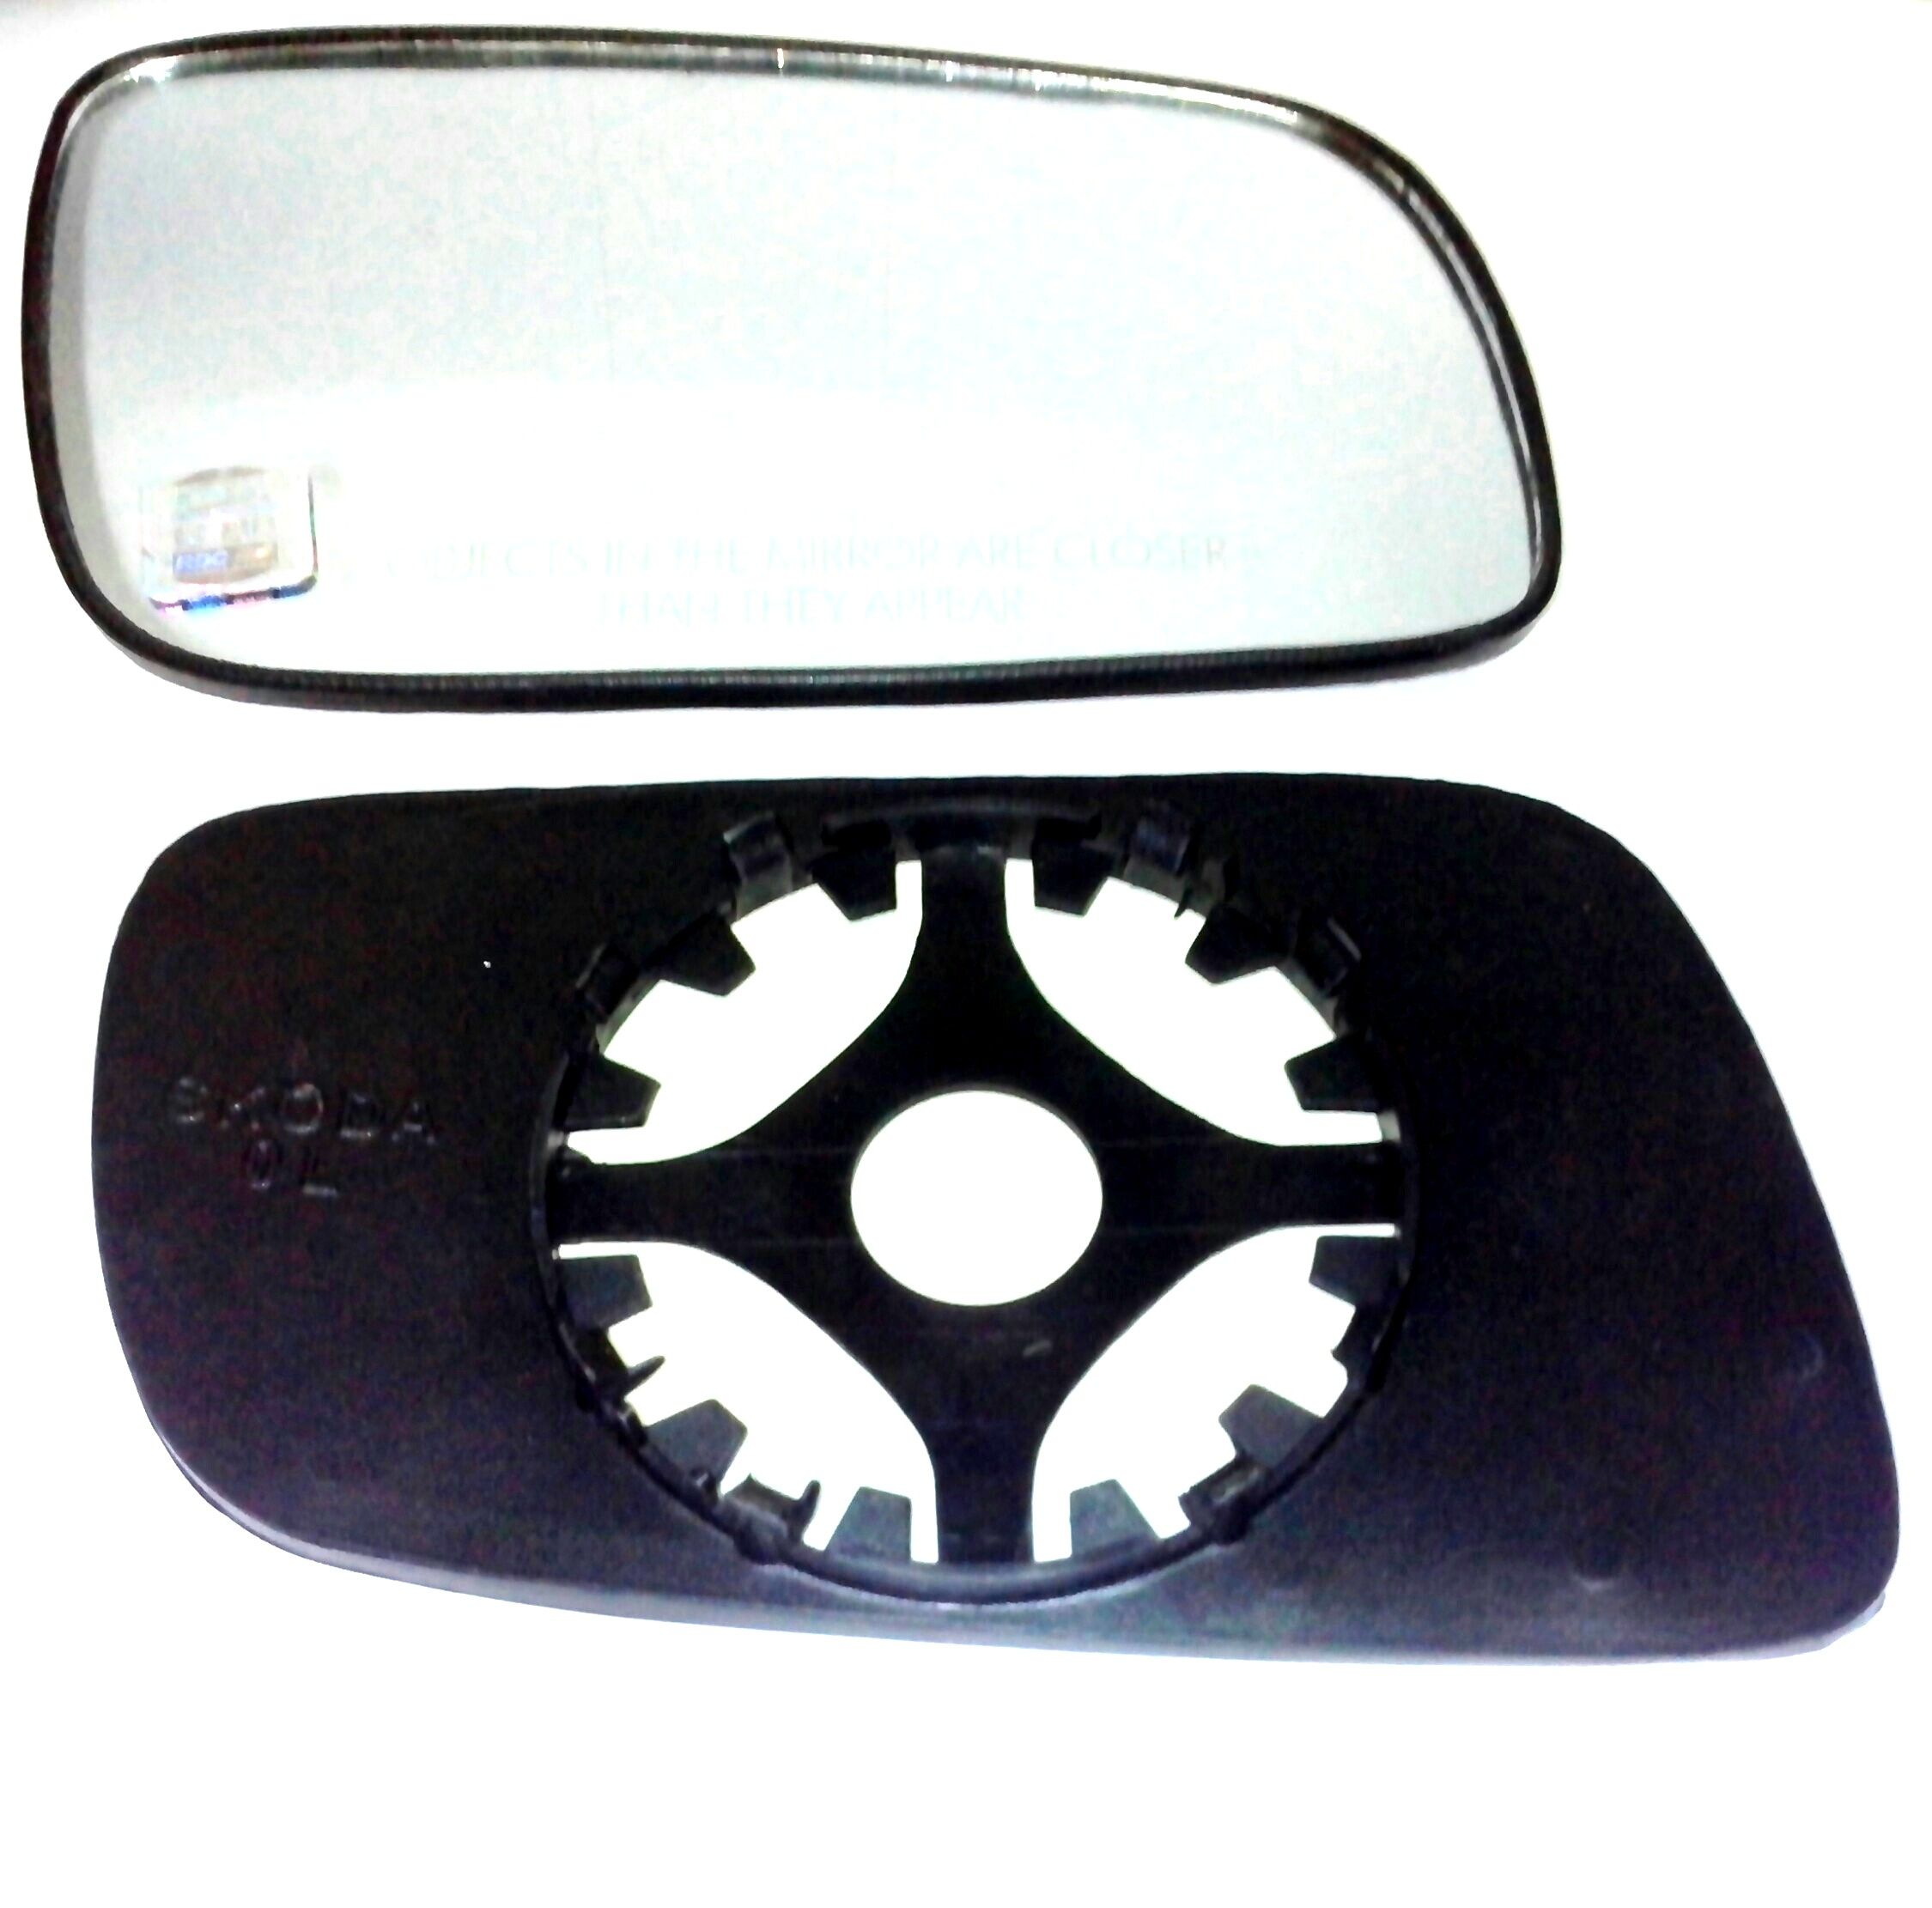 MANTRA-CONVEX MIRROR PLATES (SUB MIRROR PLATES) FOR FORD IKON LEFT SIDE